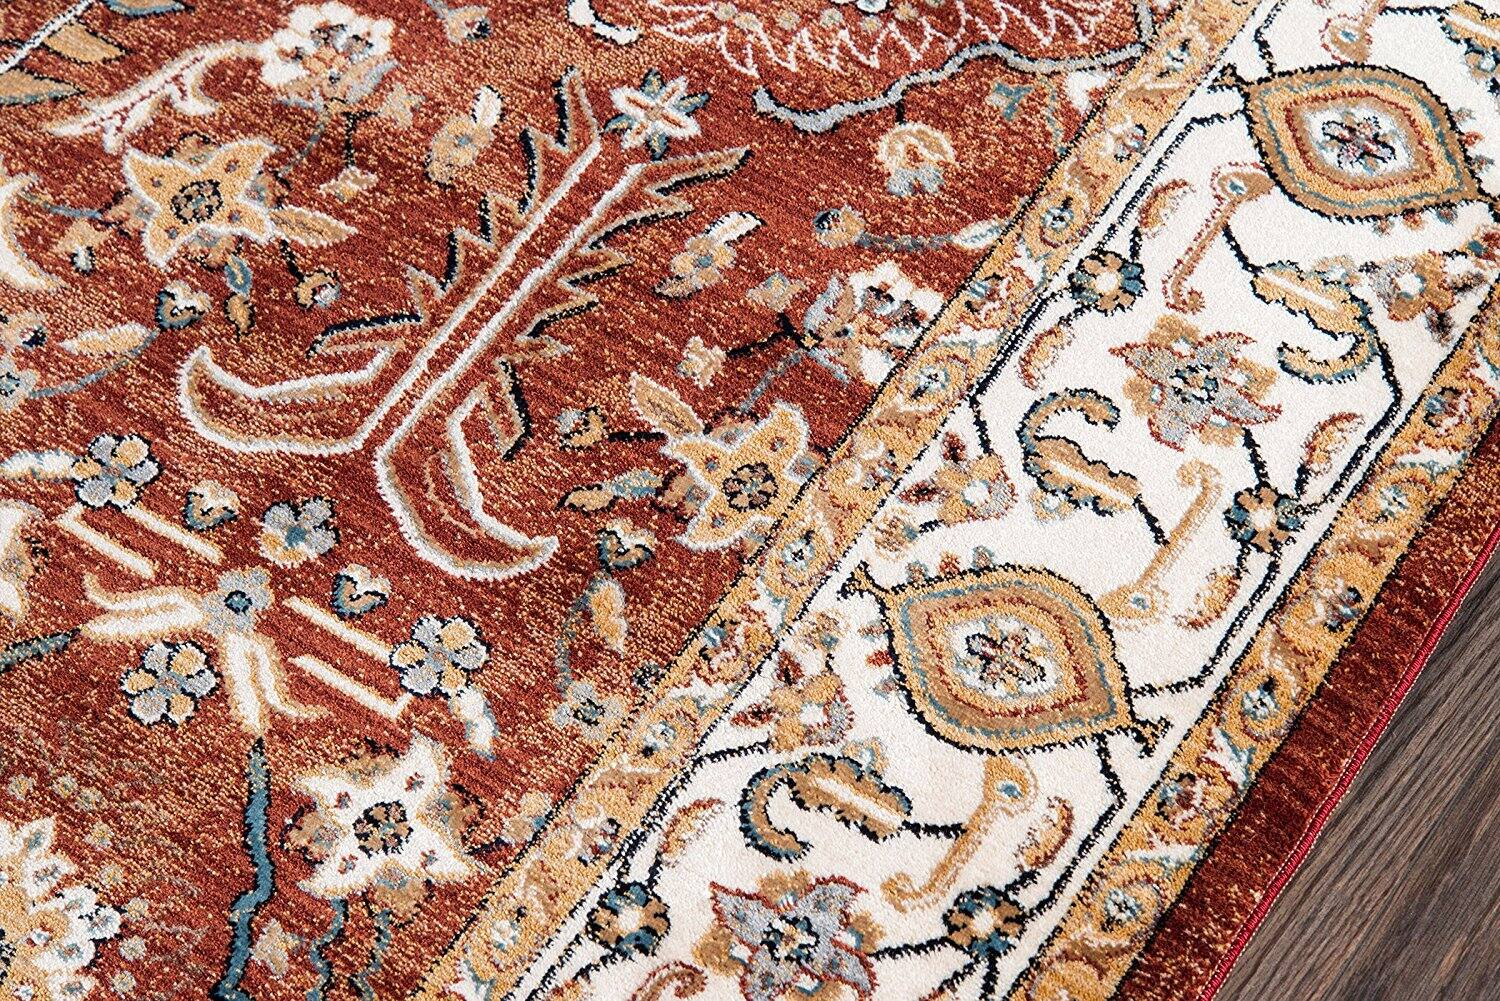 """BRIGHBR-02RST5080 Brighton Collection Traditional Persian Design Area Rug, 5'0"""" x 8'0"""", Rust $35.72 (was $153) @Amazon +Free Shipping"""